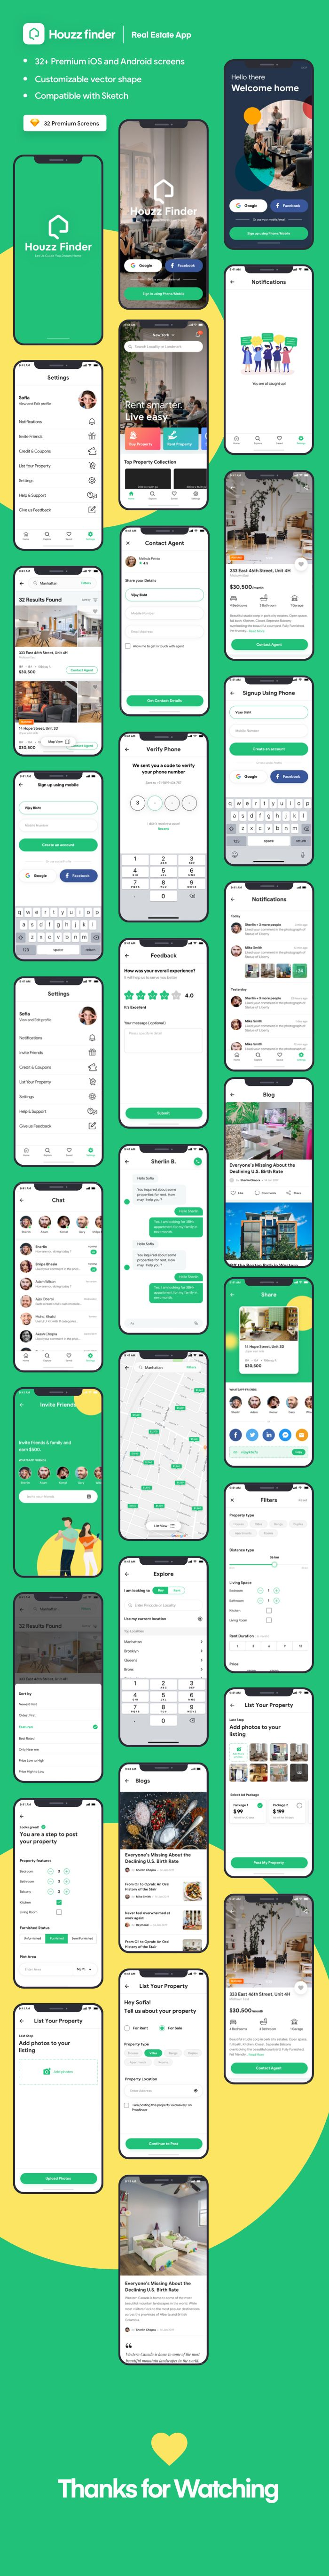 Houzz Finder – A Real Estate iOS Mobile App UI Kit on